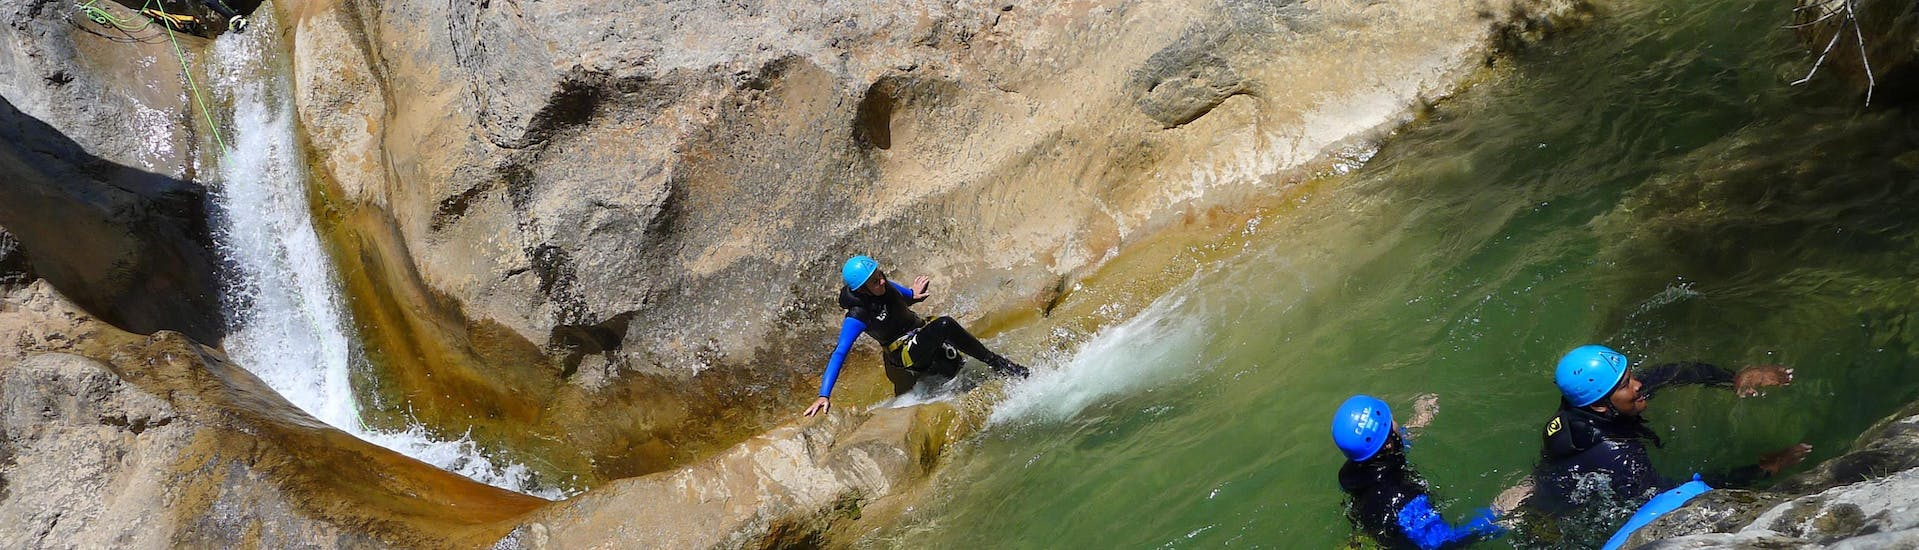 A girl is sliding in the Canyon d'Oô during the Canyoning Technical with H2O vives.